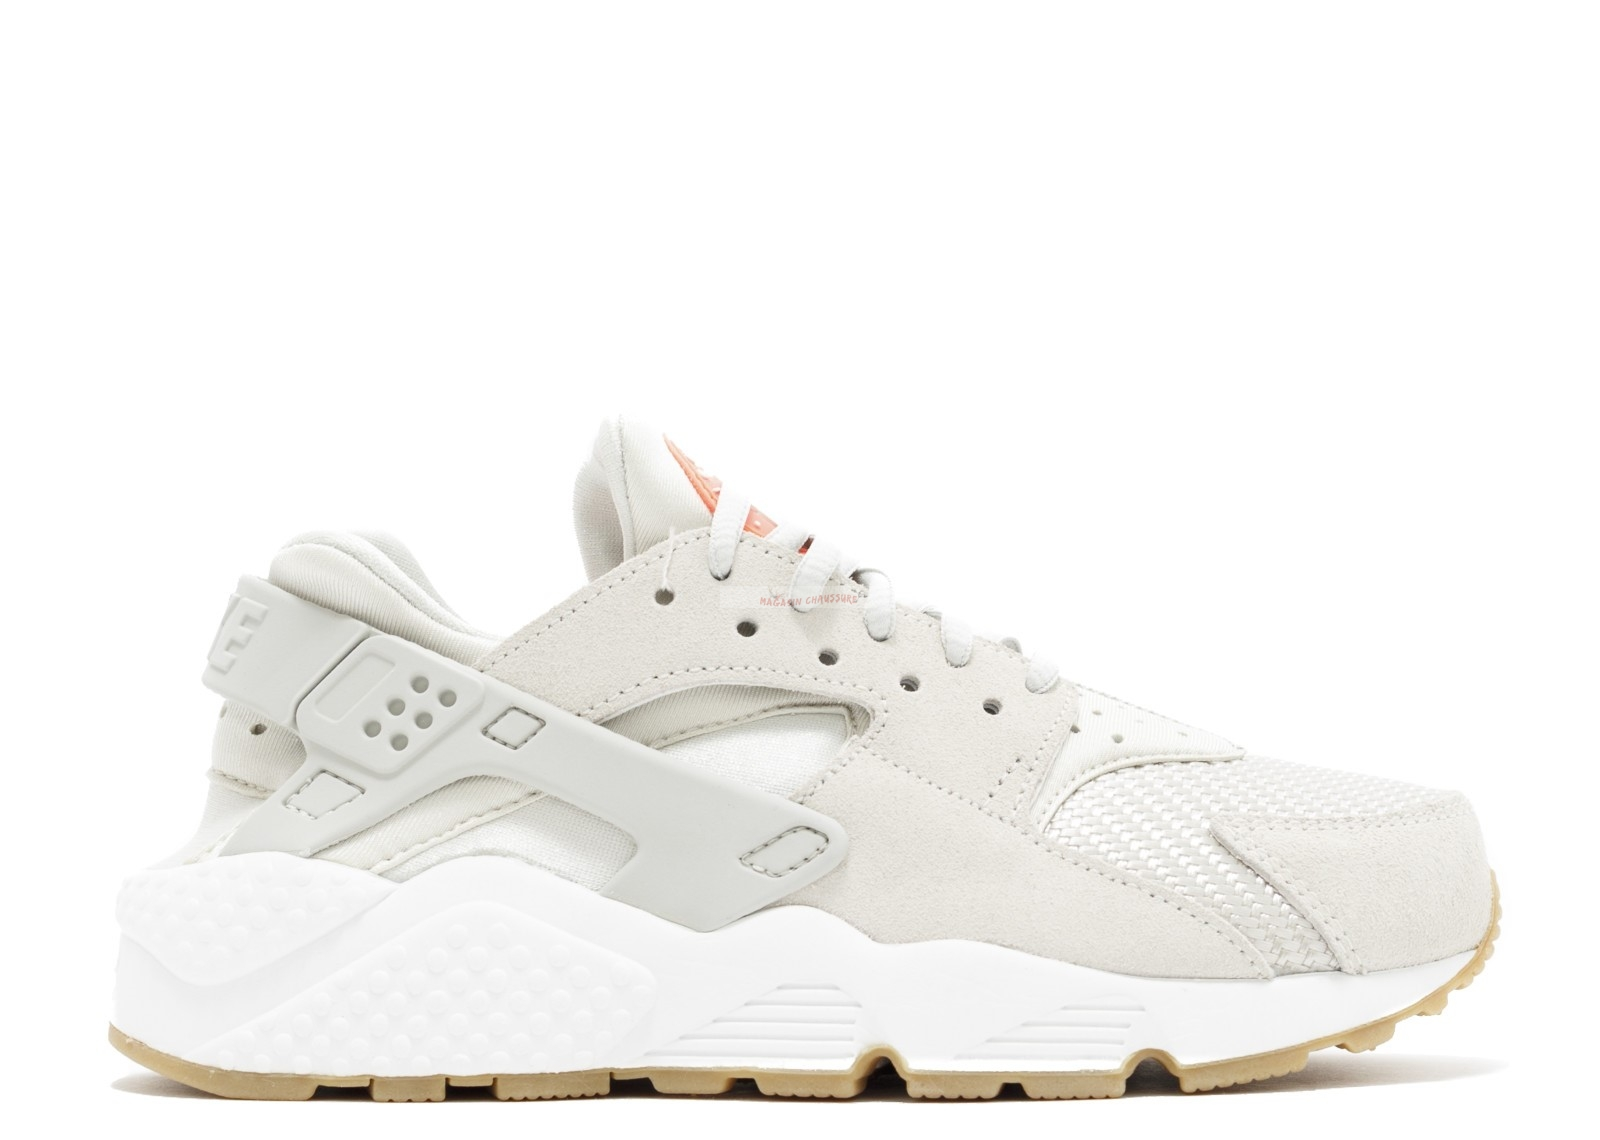 Nike Air Huarache Run - Femme Txt Beige (818597-001) Chaussure de Basket